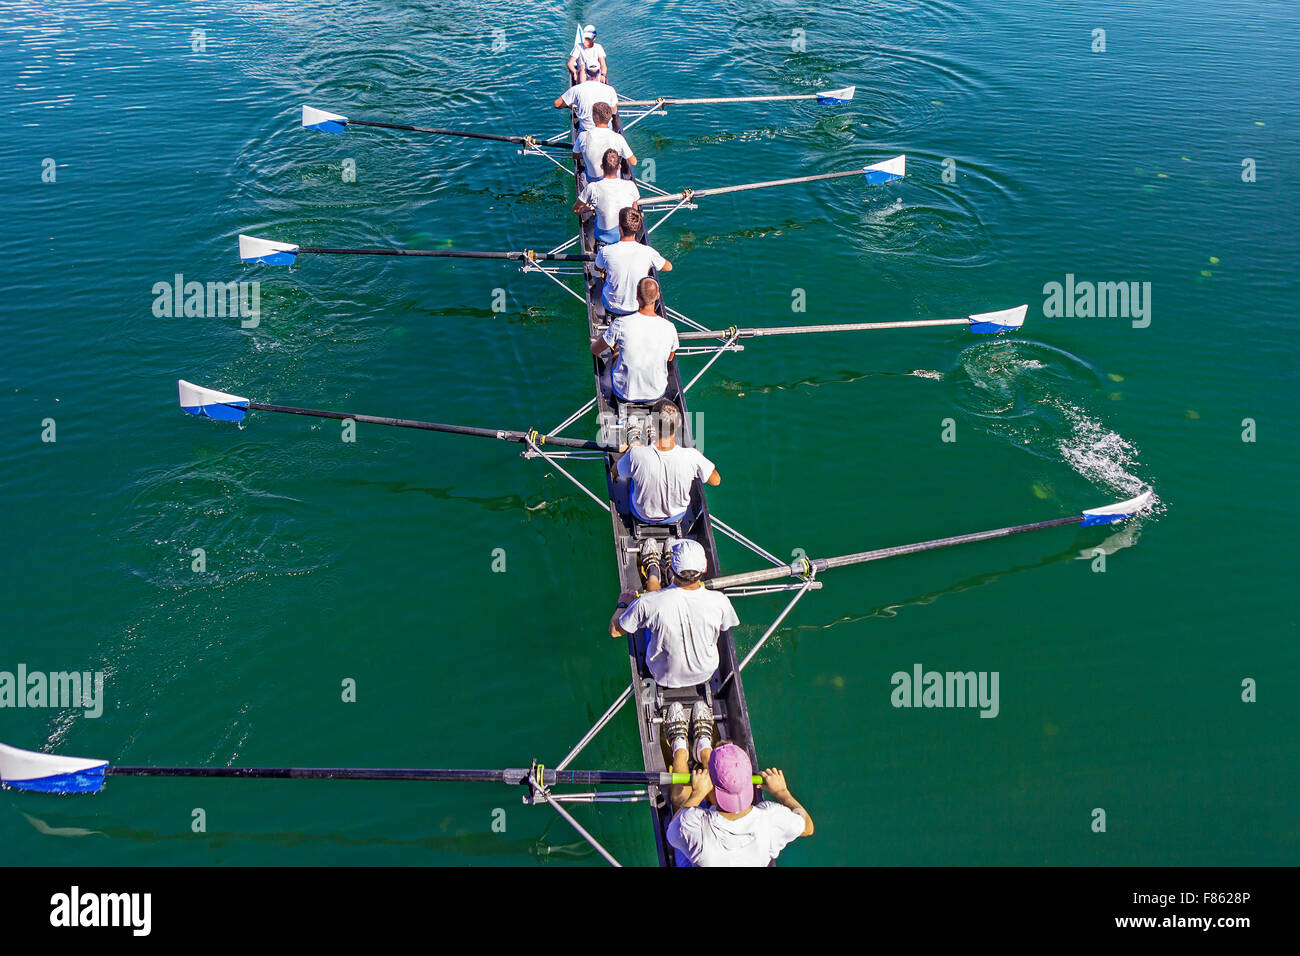 Boat coxed eight Rowers training rowing on the lake - Stock Image